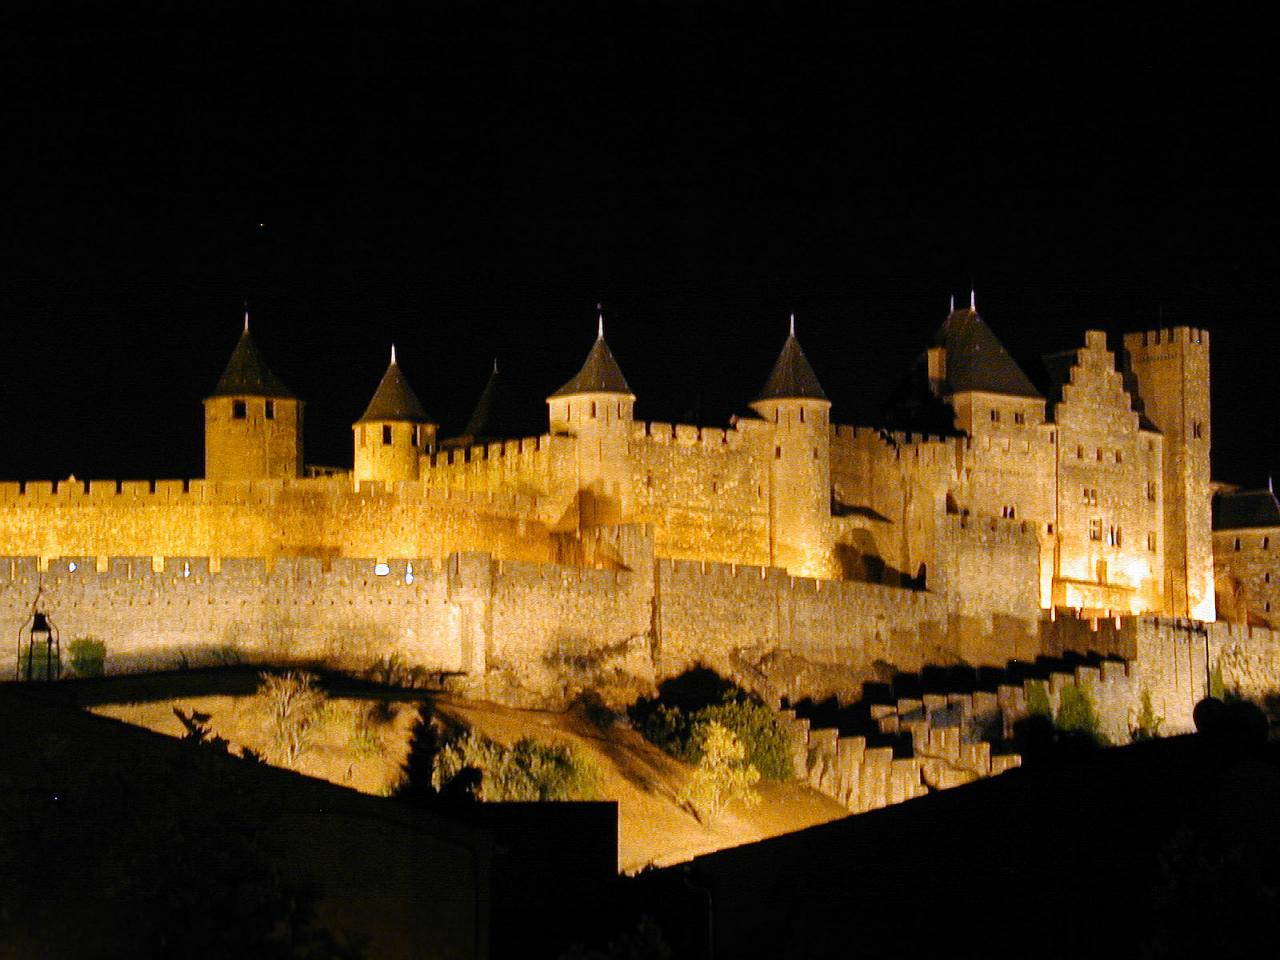 The Medieval Castle by night